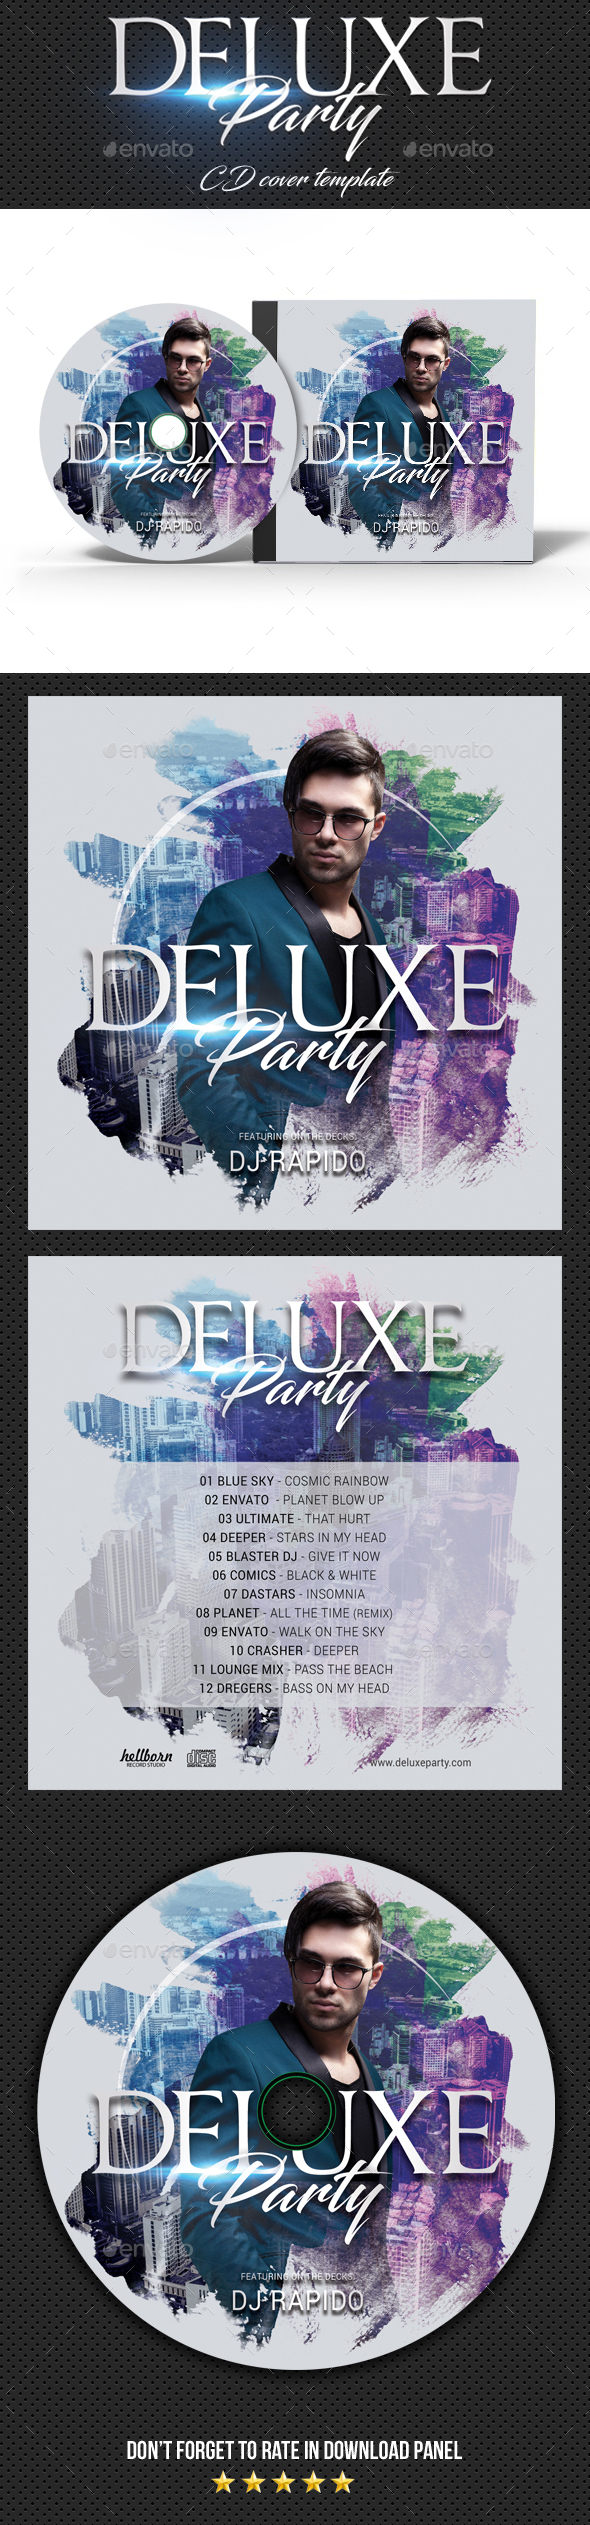 Deluxe Dj Party CD Cover - CD & DVD Artwork Print Templates